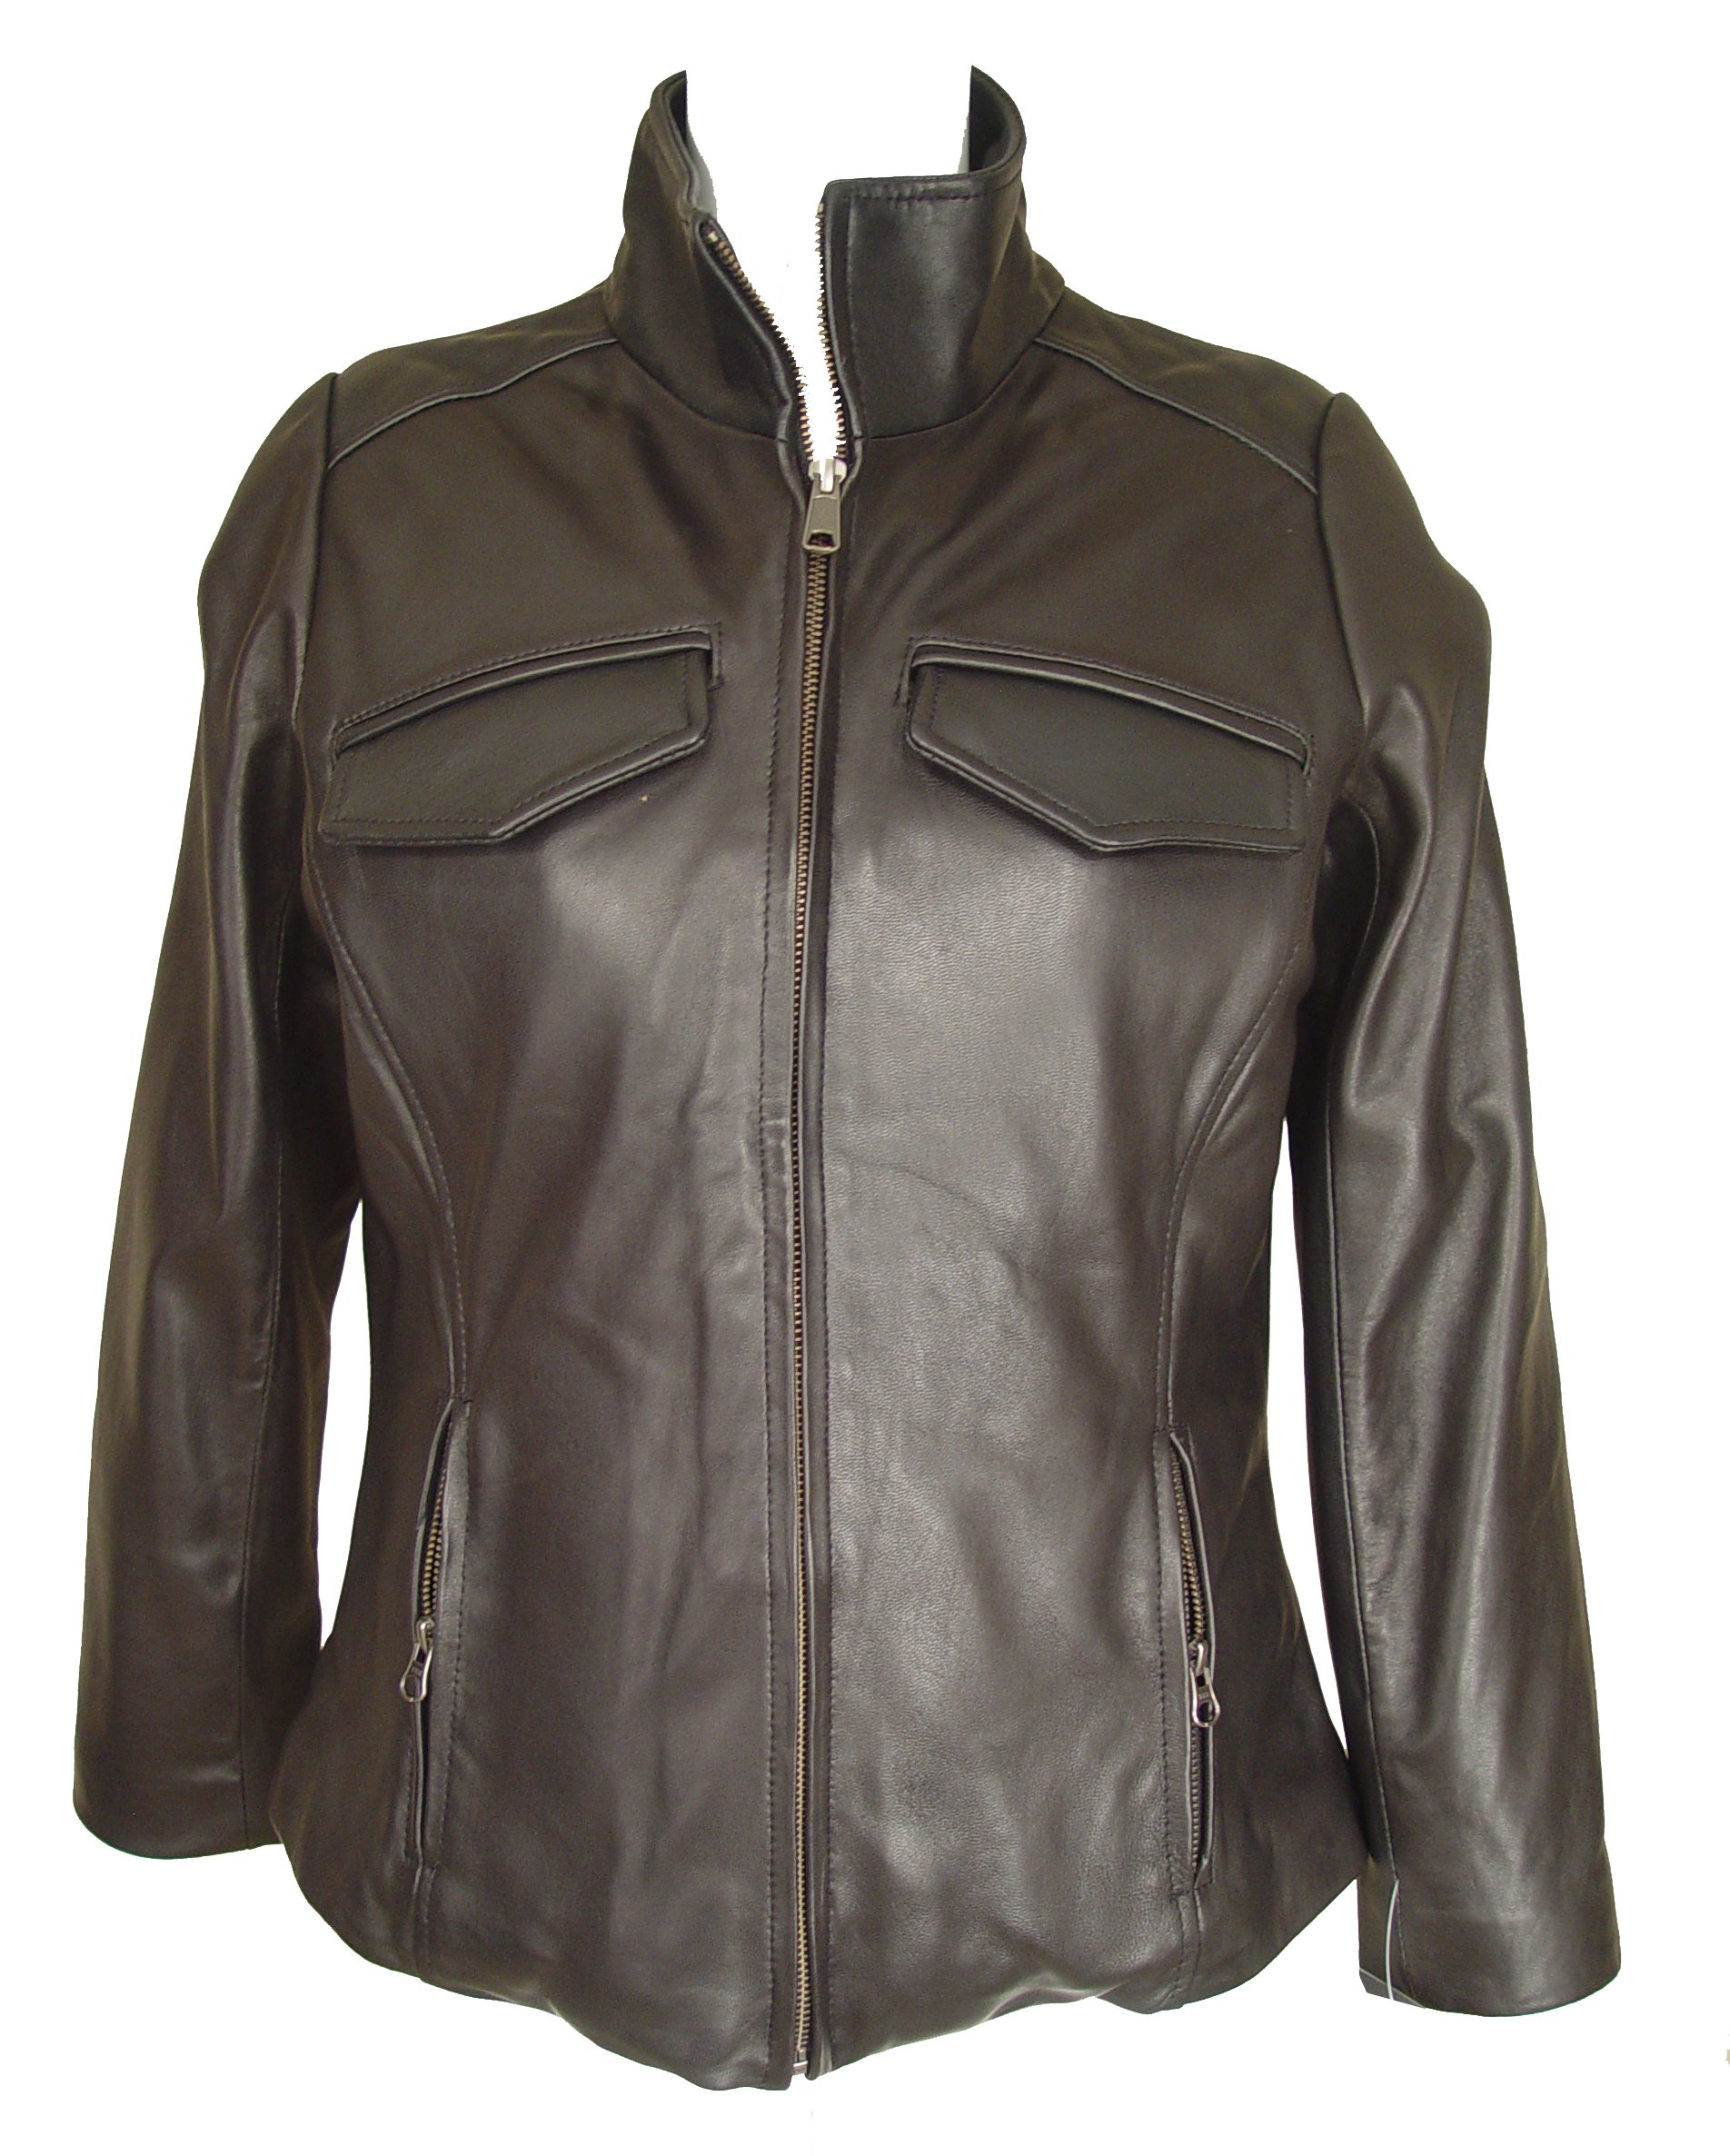 Nettailor 4082 Leather Moto Jackets Womens Genuine Fine Soft Lamb